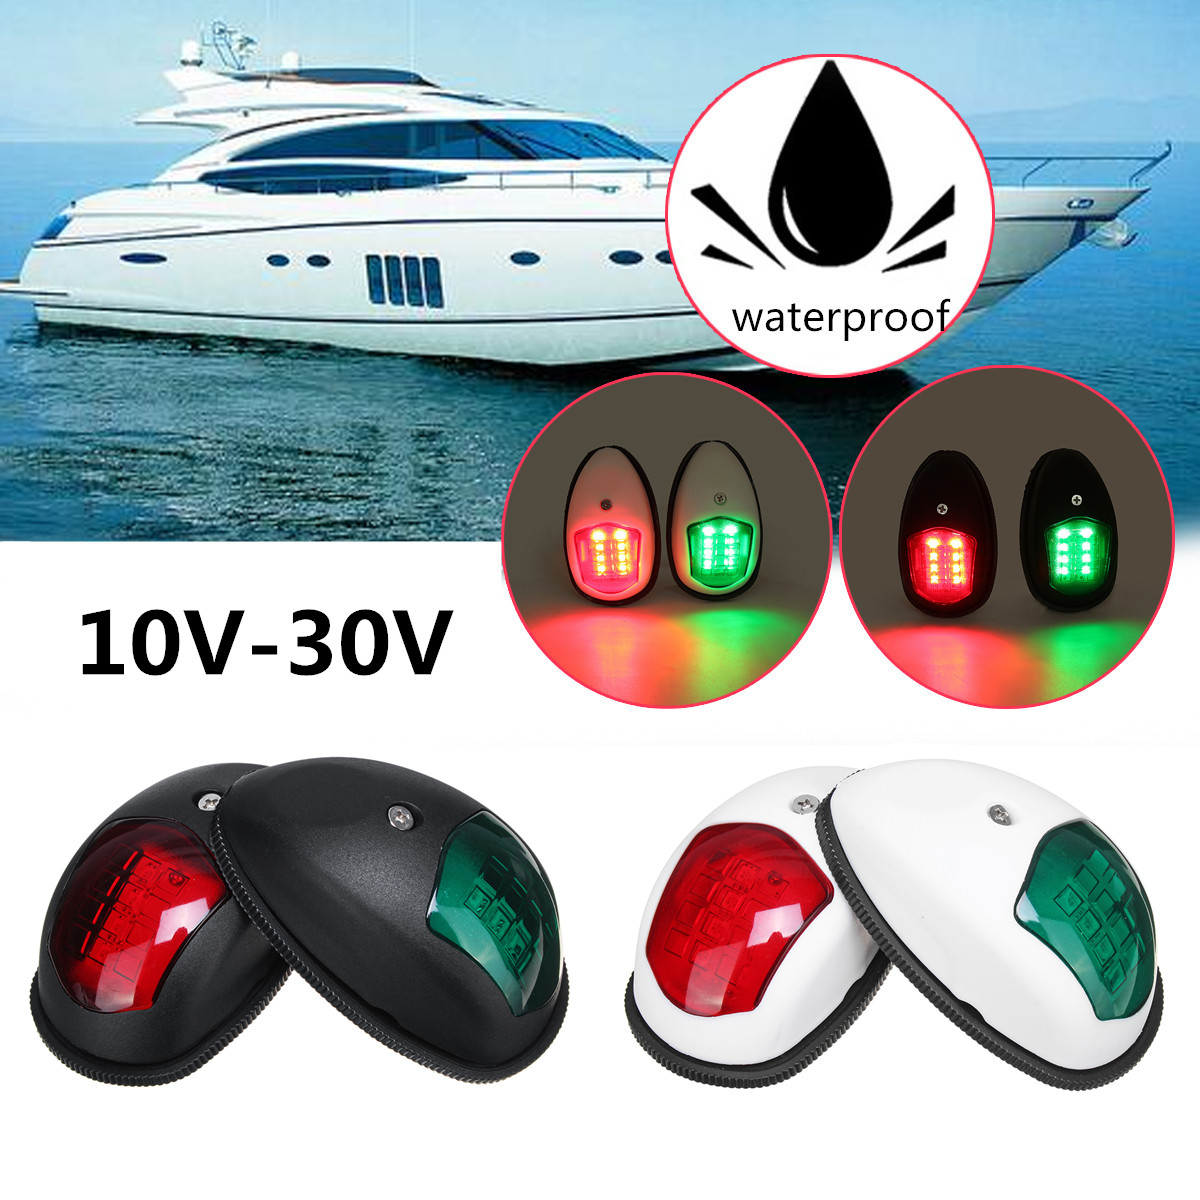 1Pair 10V-30V Universal 8 LED Navigation Signal Light Lamp Warning Lighting For Marine Boat Yacht Truck Trailer Van